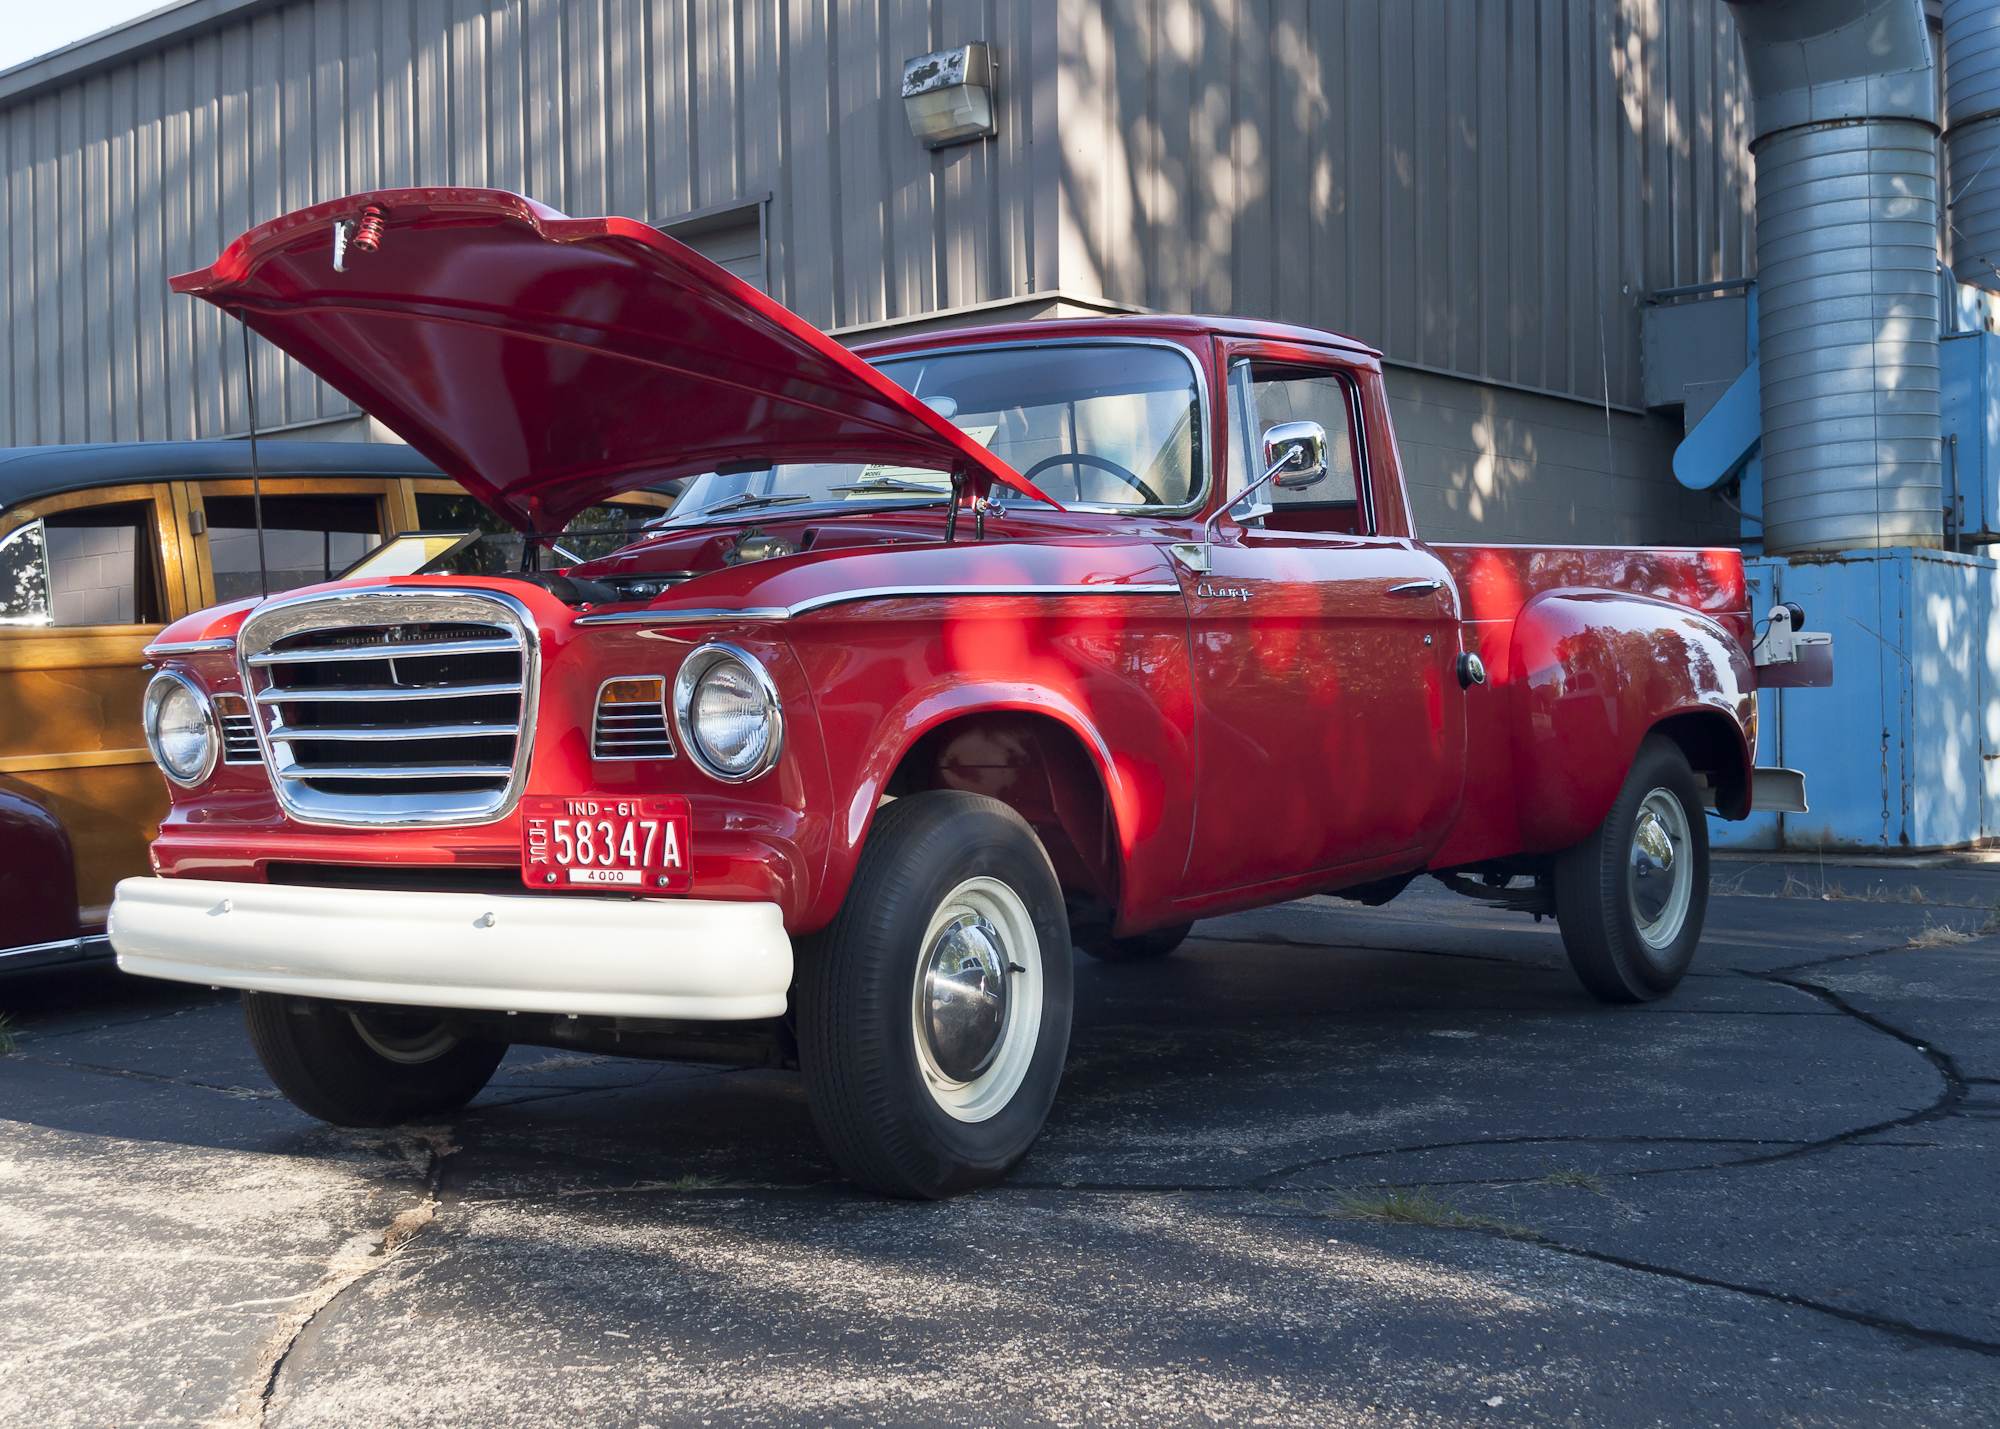 1961 Studebaker Champ Pickup by ~Stig2112 on deviantART